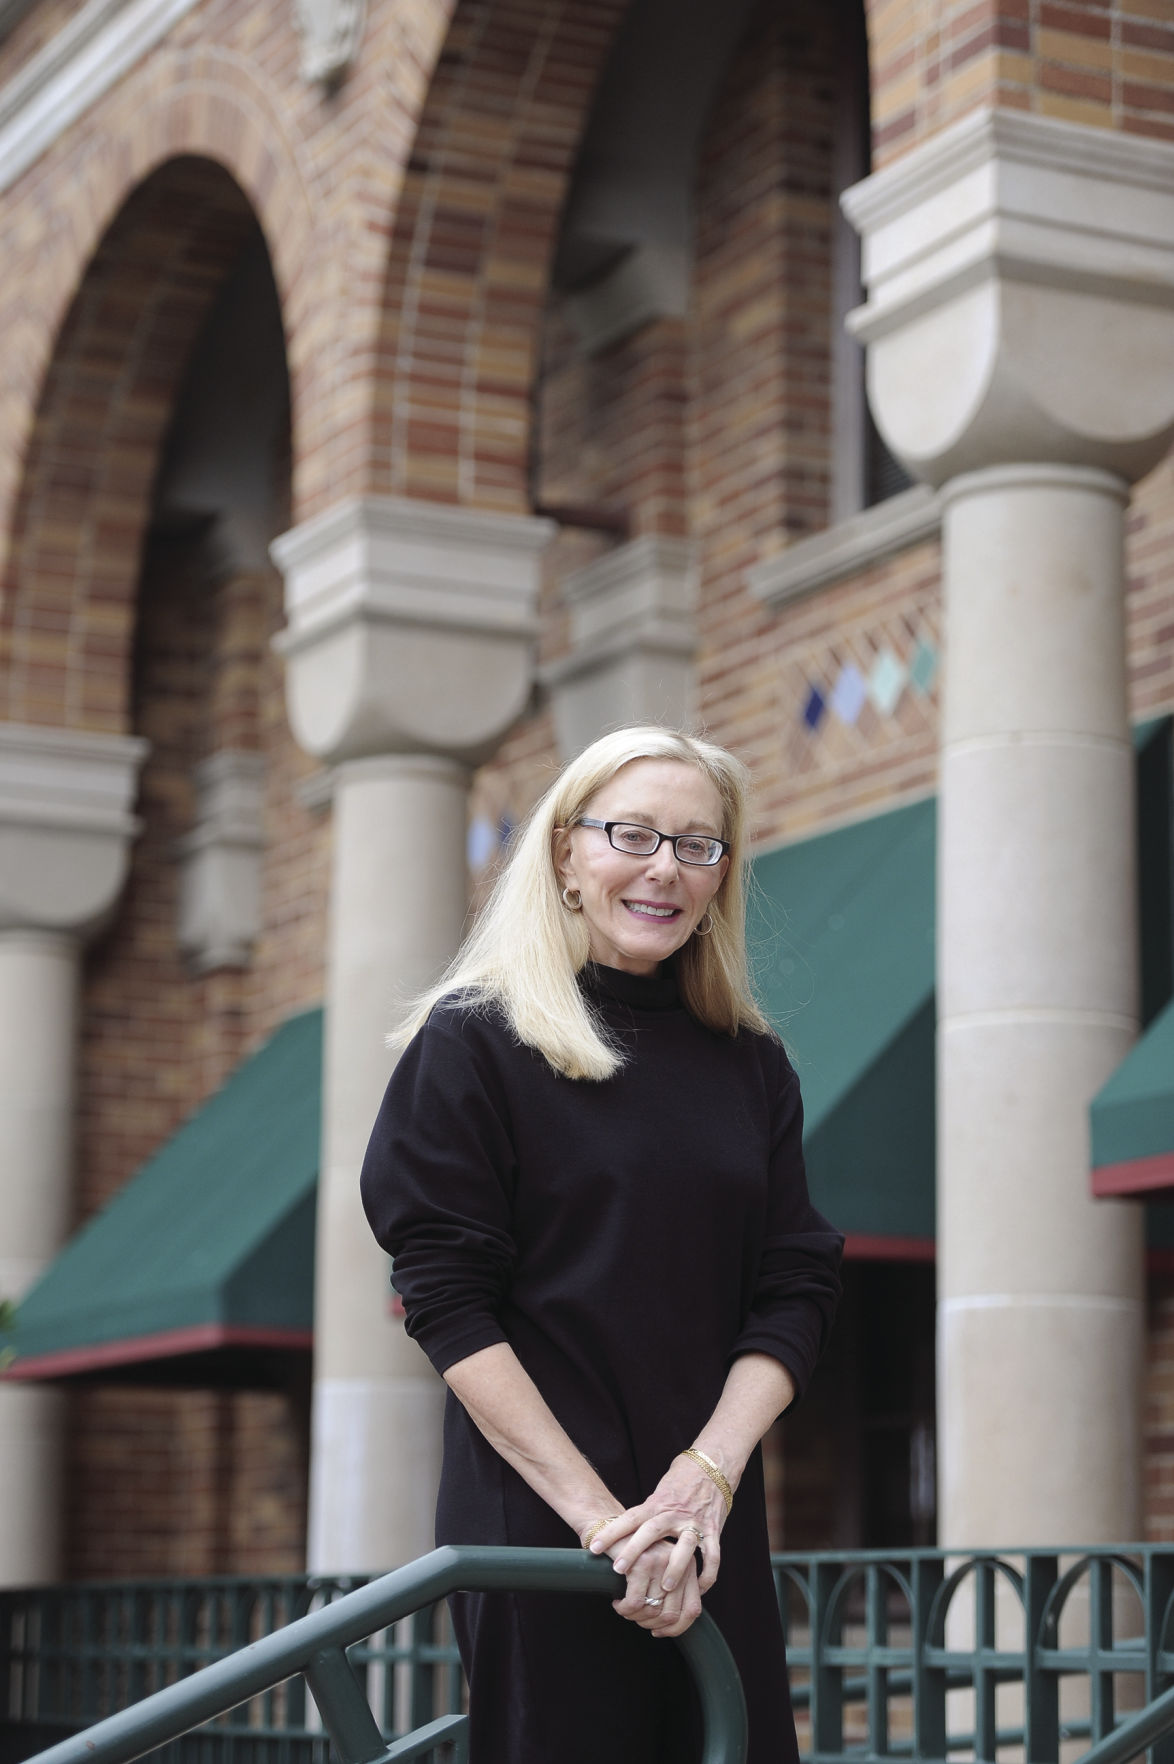 Lodi's new business development manager ready for a challenge